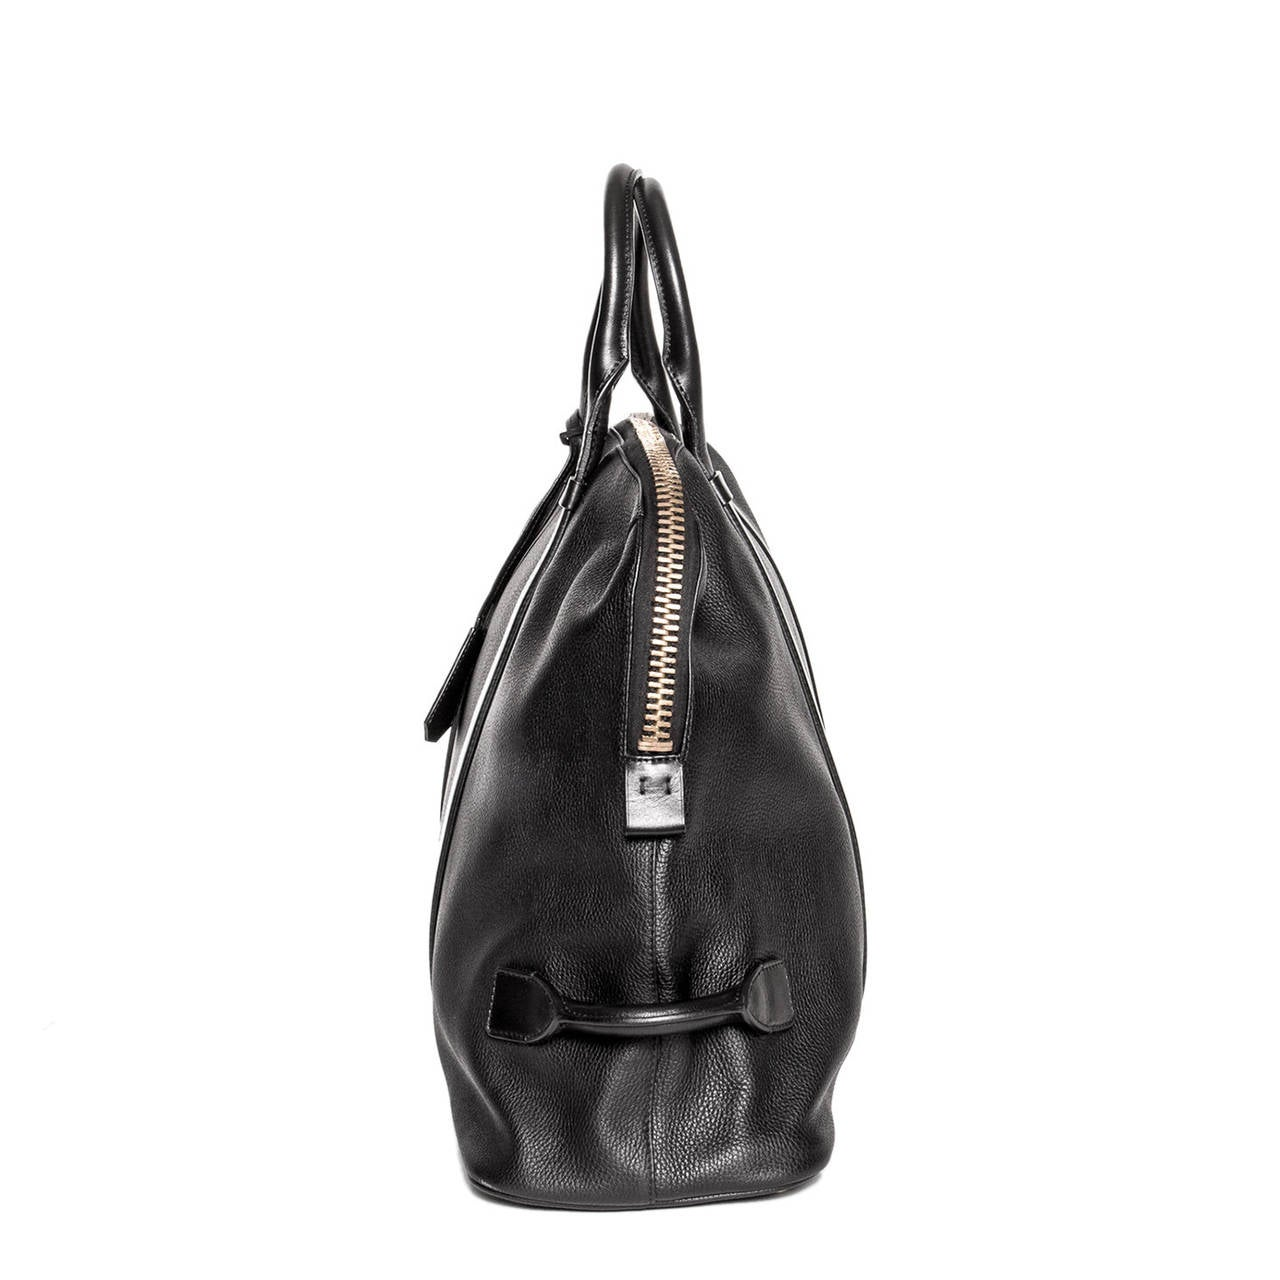 Black textured leather oversize/travel bag with an exaggerated bronze metal zipper with a black leather puller and handle on one side. The shoulder straps are made of smooth leather and extend to front and back panels. The bag has also a matching